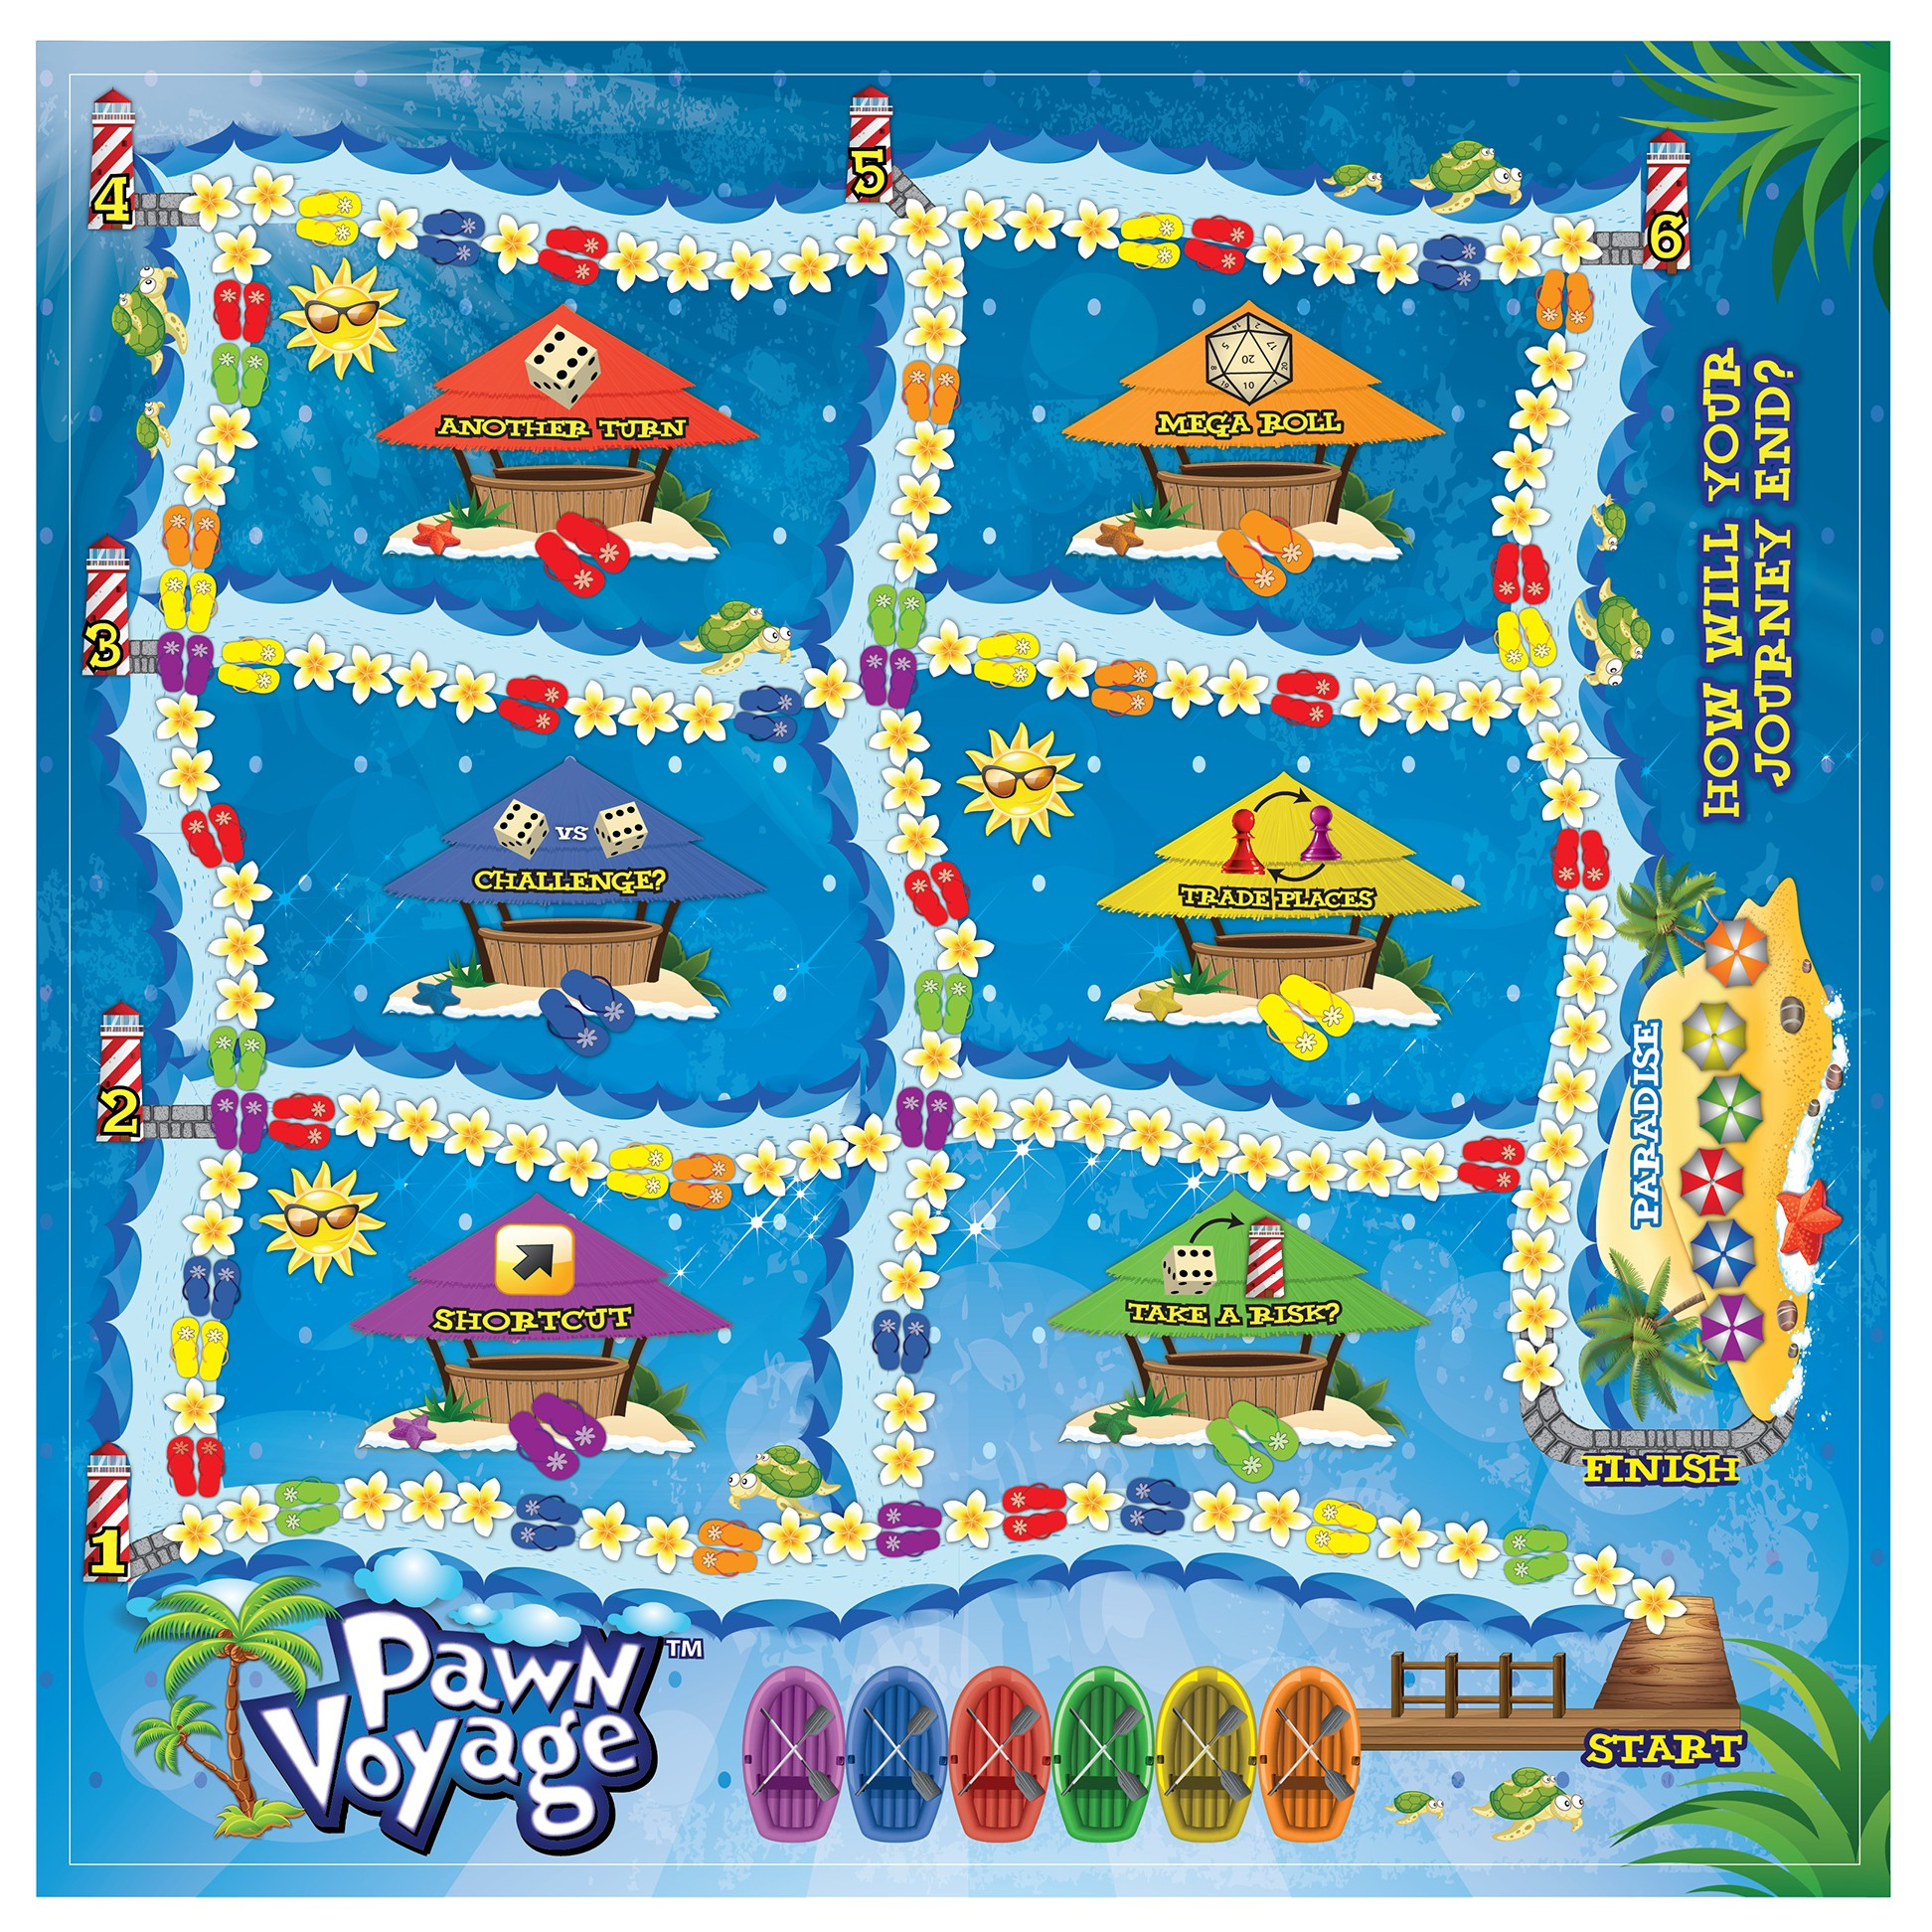 Revise the Board, Box and Instructions for a new and exciting Board Game called Pawn Voyage